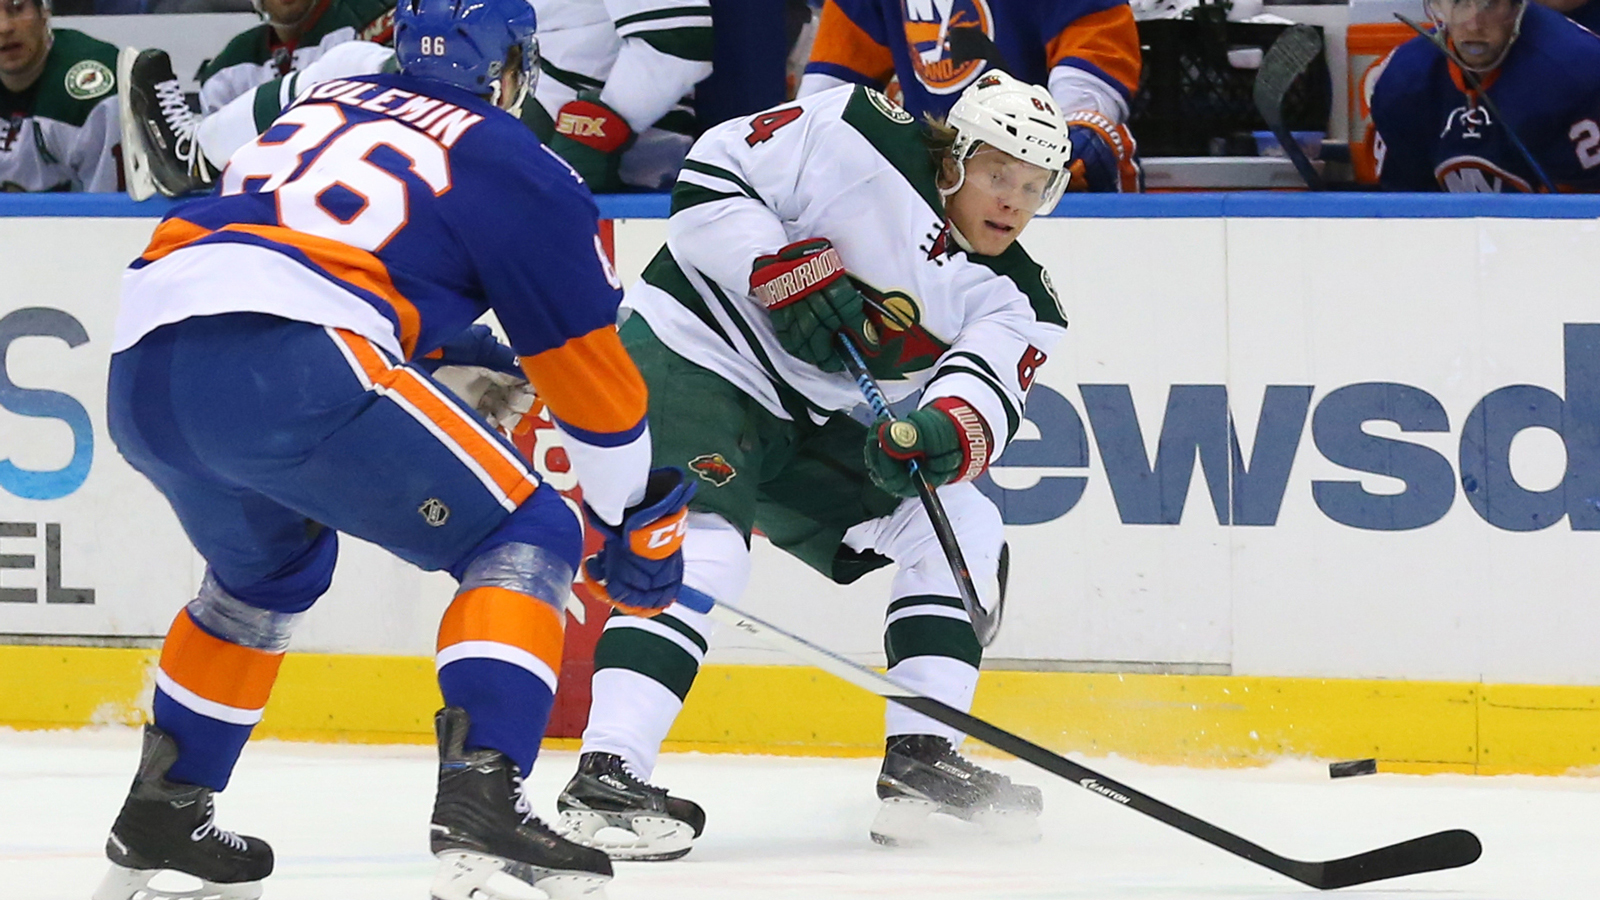 Preview: Wild at Islanders